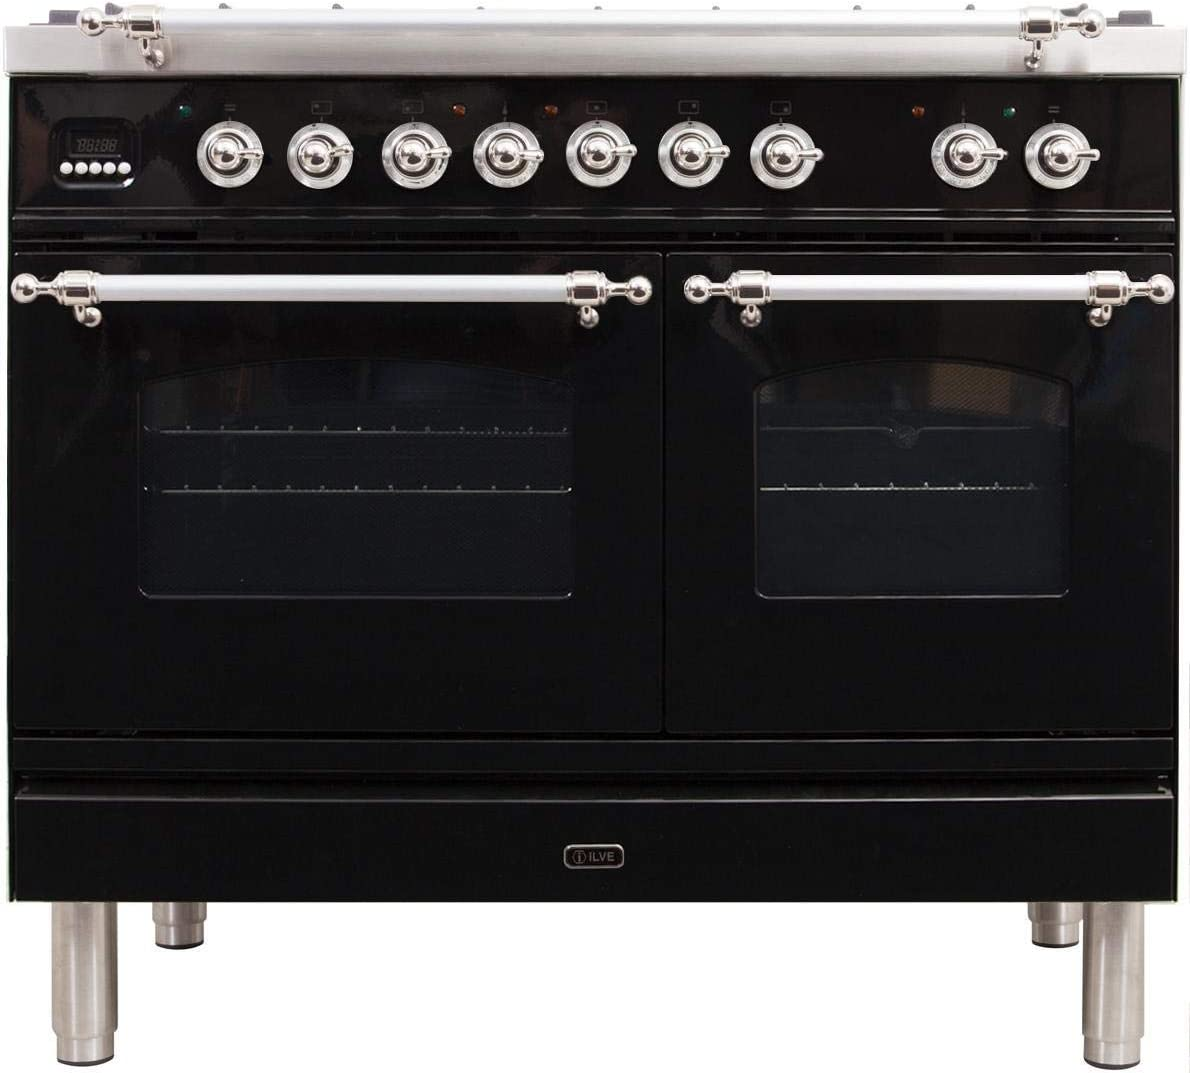 Ilve UPDN100FDMPNX Nostalgie Series 40 Inch Dual Fuel Convection Freestanding Range, 5 Sealed Brass Burners, 4 cu.ft. Total Oven Capacity in Glossy Black, Chrome Trim (Natural Gas)